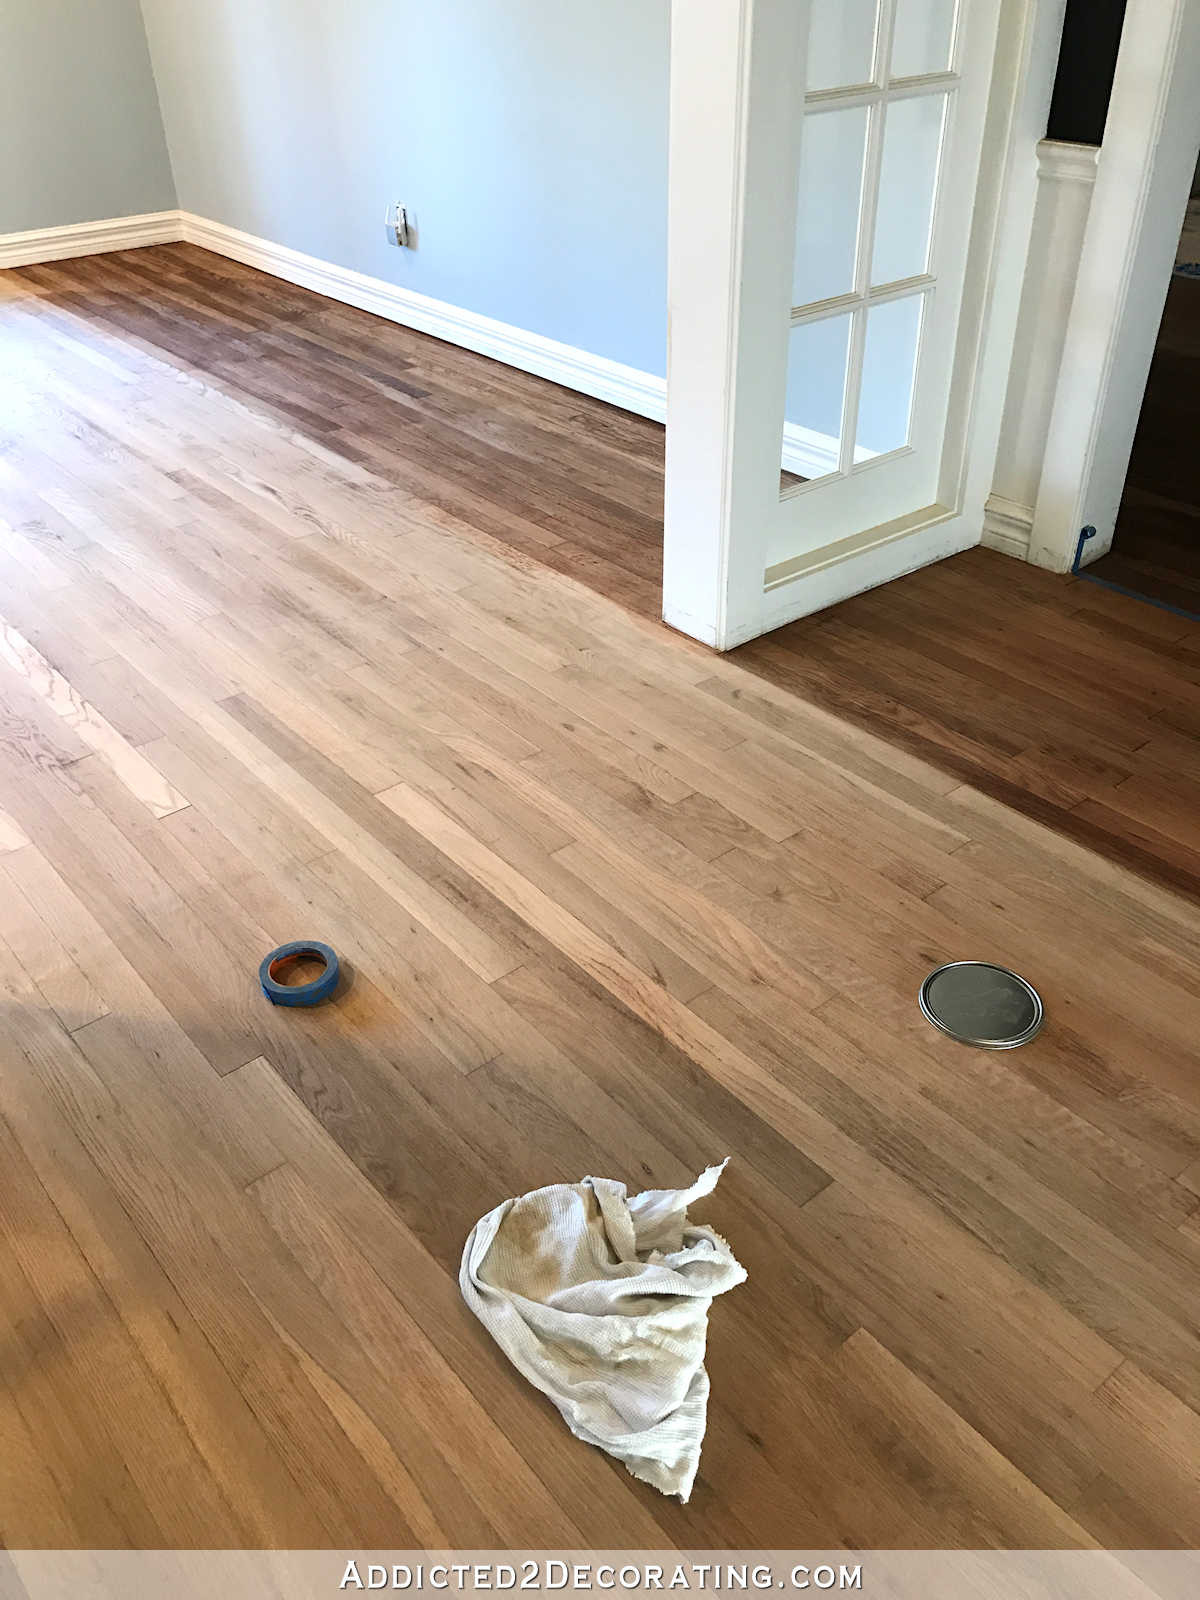 2 different color hardwood floors of adventures in staining my red oak hardwood floors products process regarding staining red oak hardwood floors 3 entryway and music room